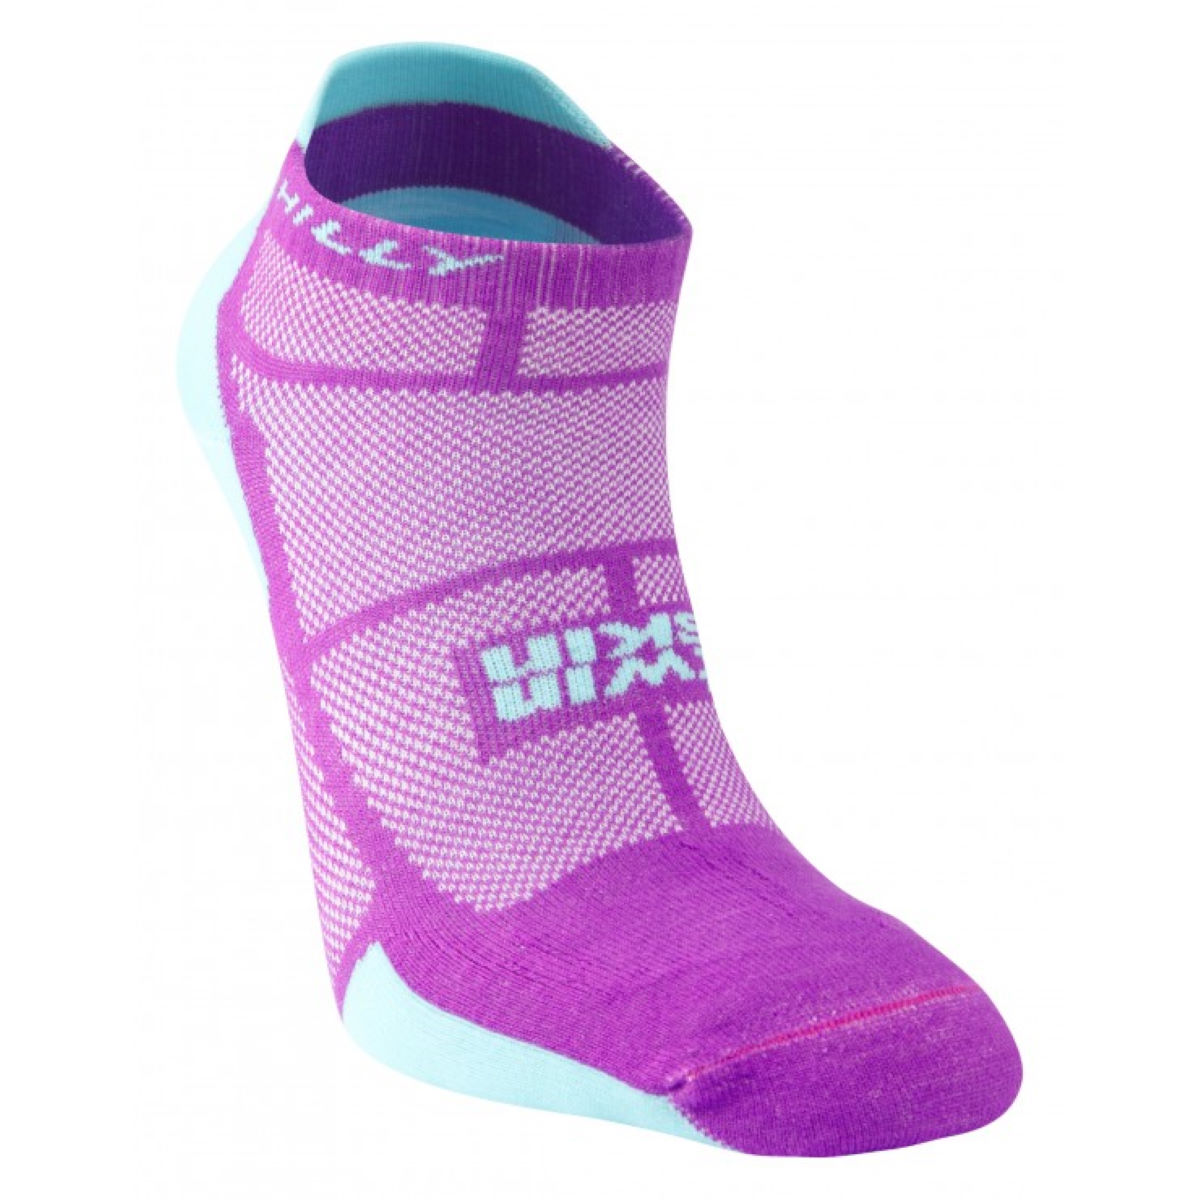 Chaussettes Femme Hilly TwinSkin - S Purple/Aquamarine Chaussettes